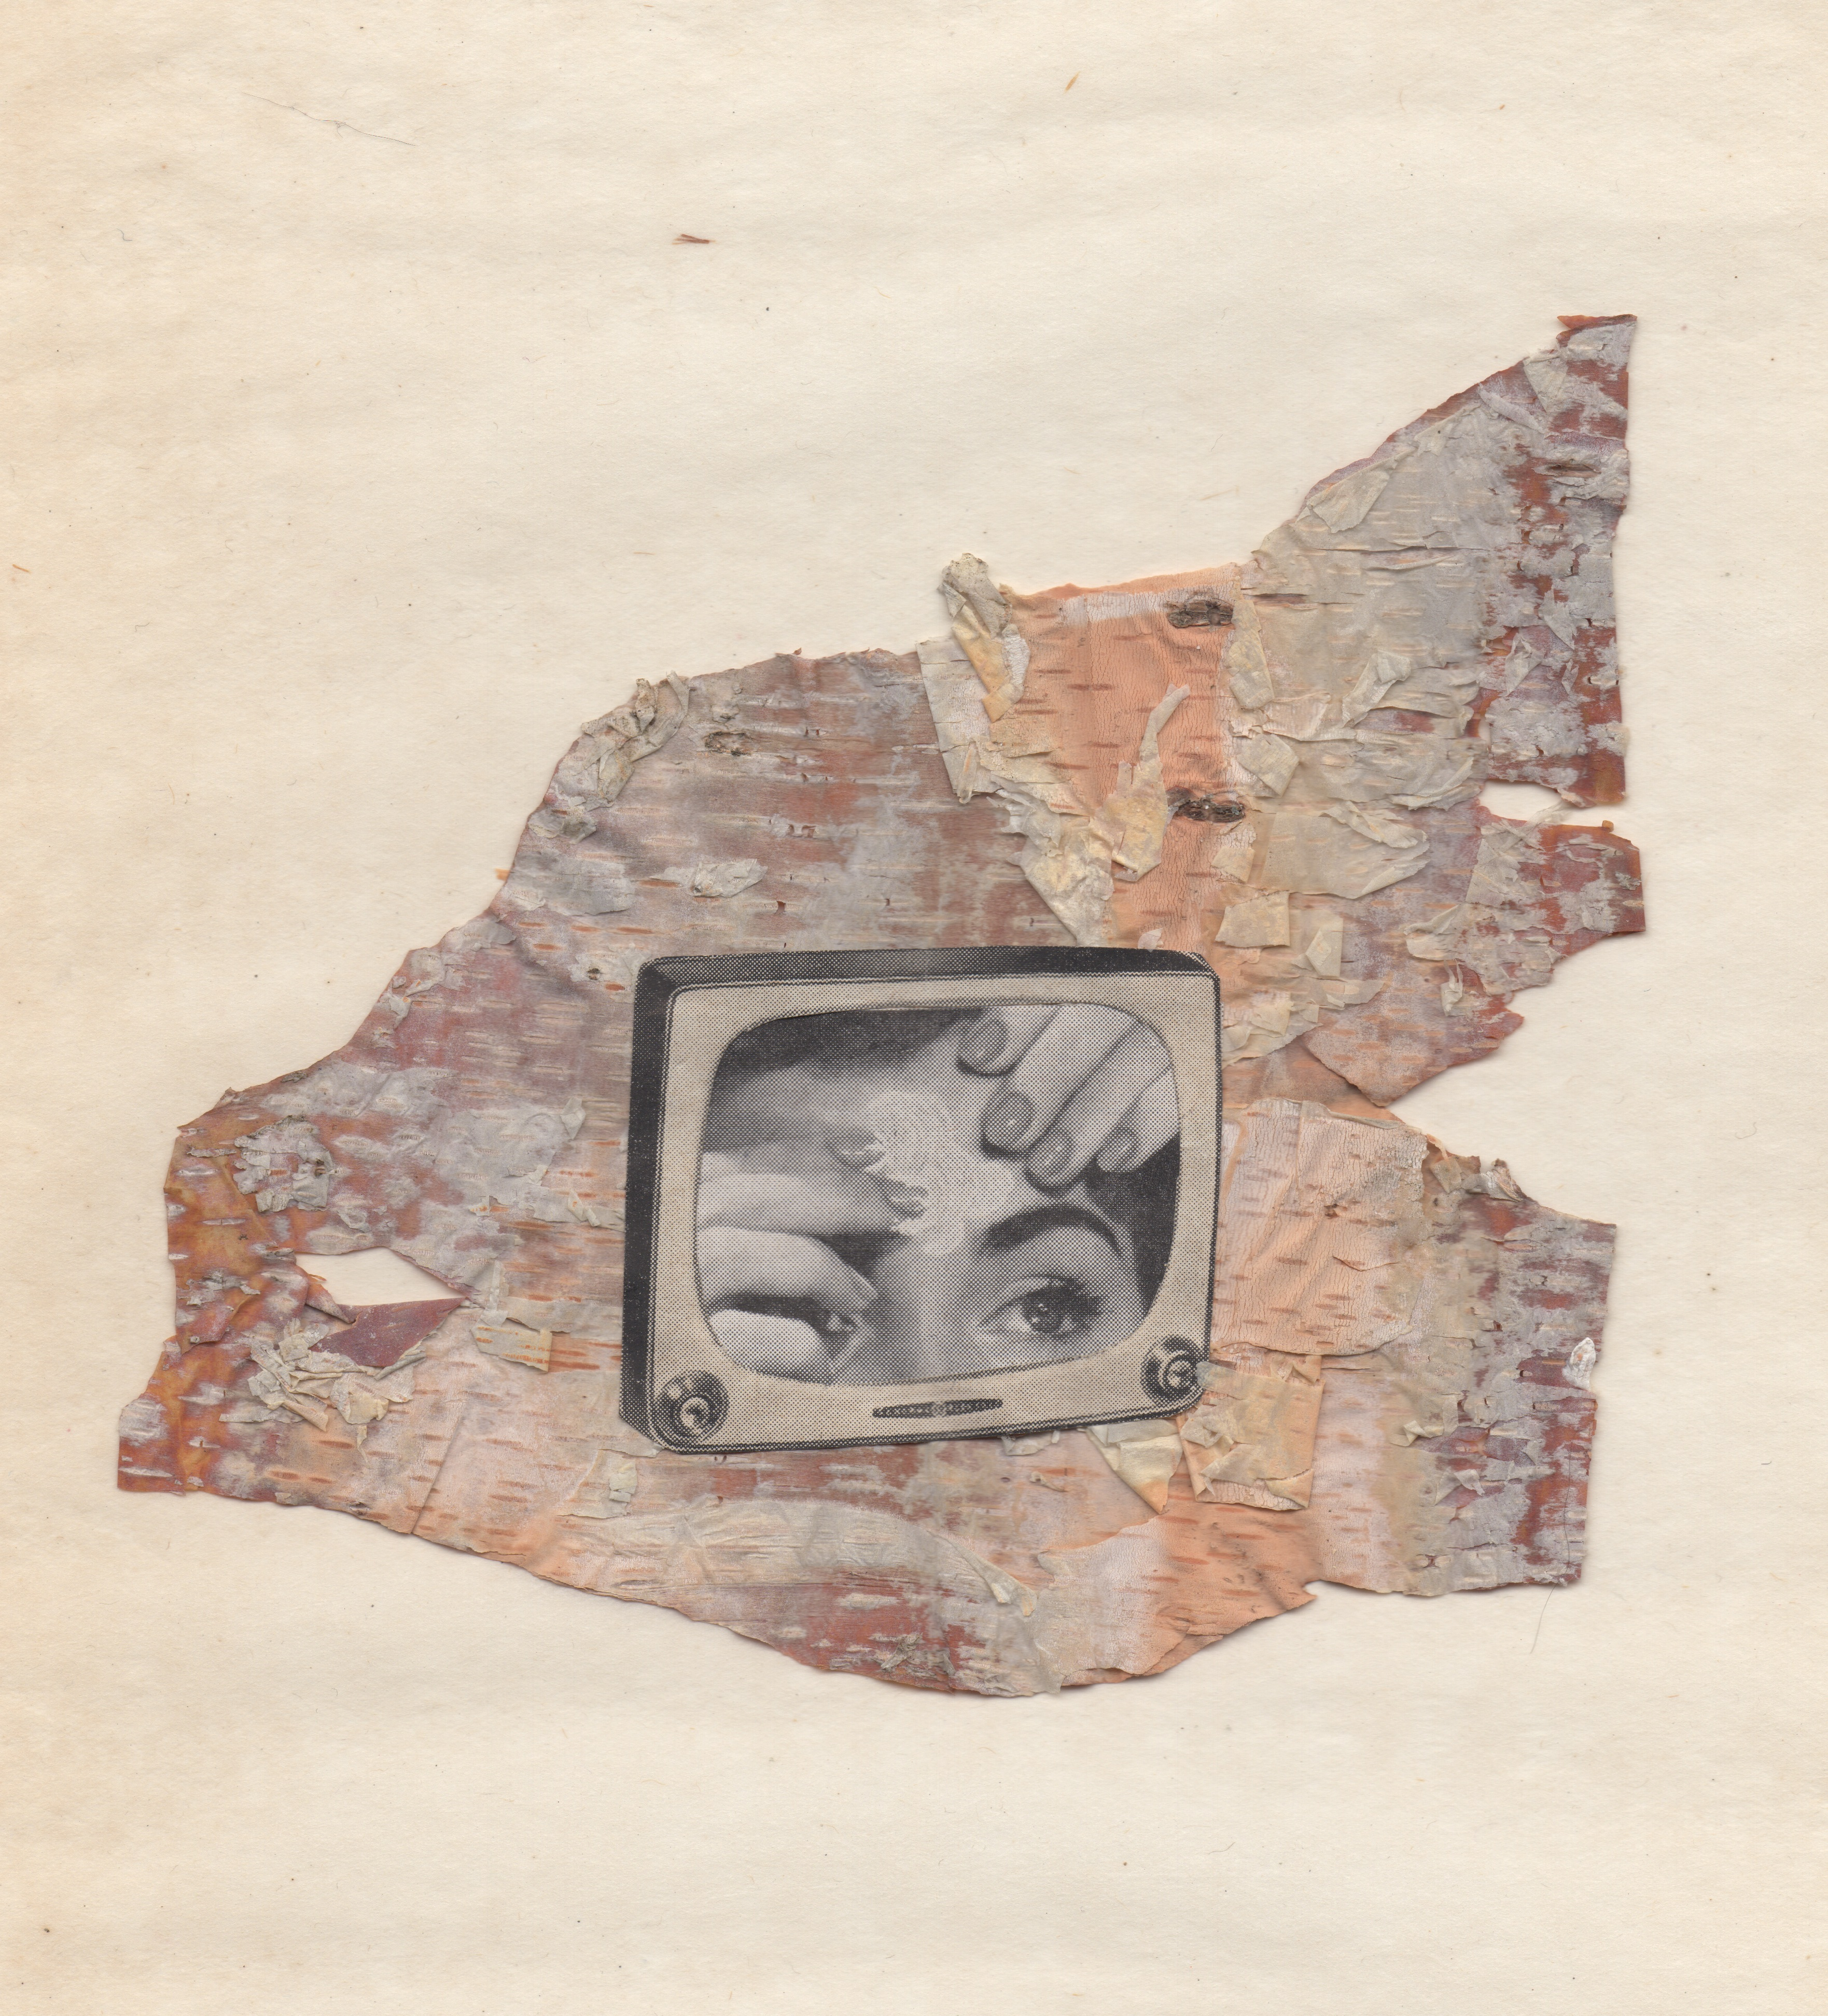 Interview with Mixed Media Collage Artist, Nina Dubois on Jung Katz Art Blog